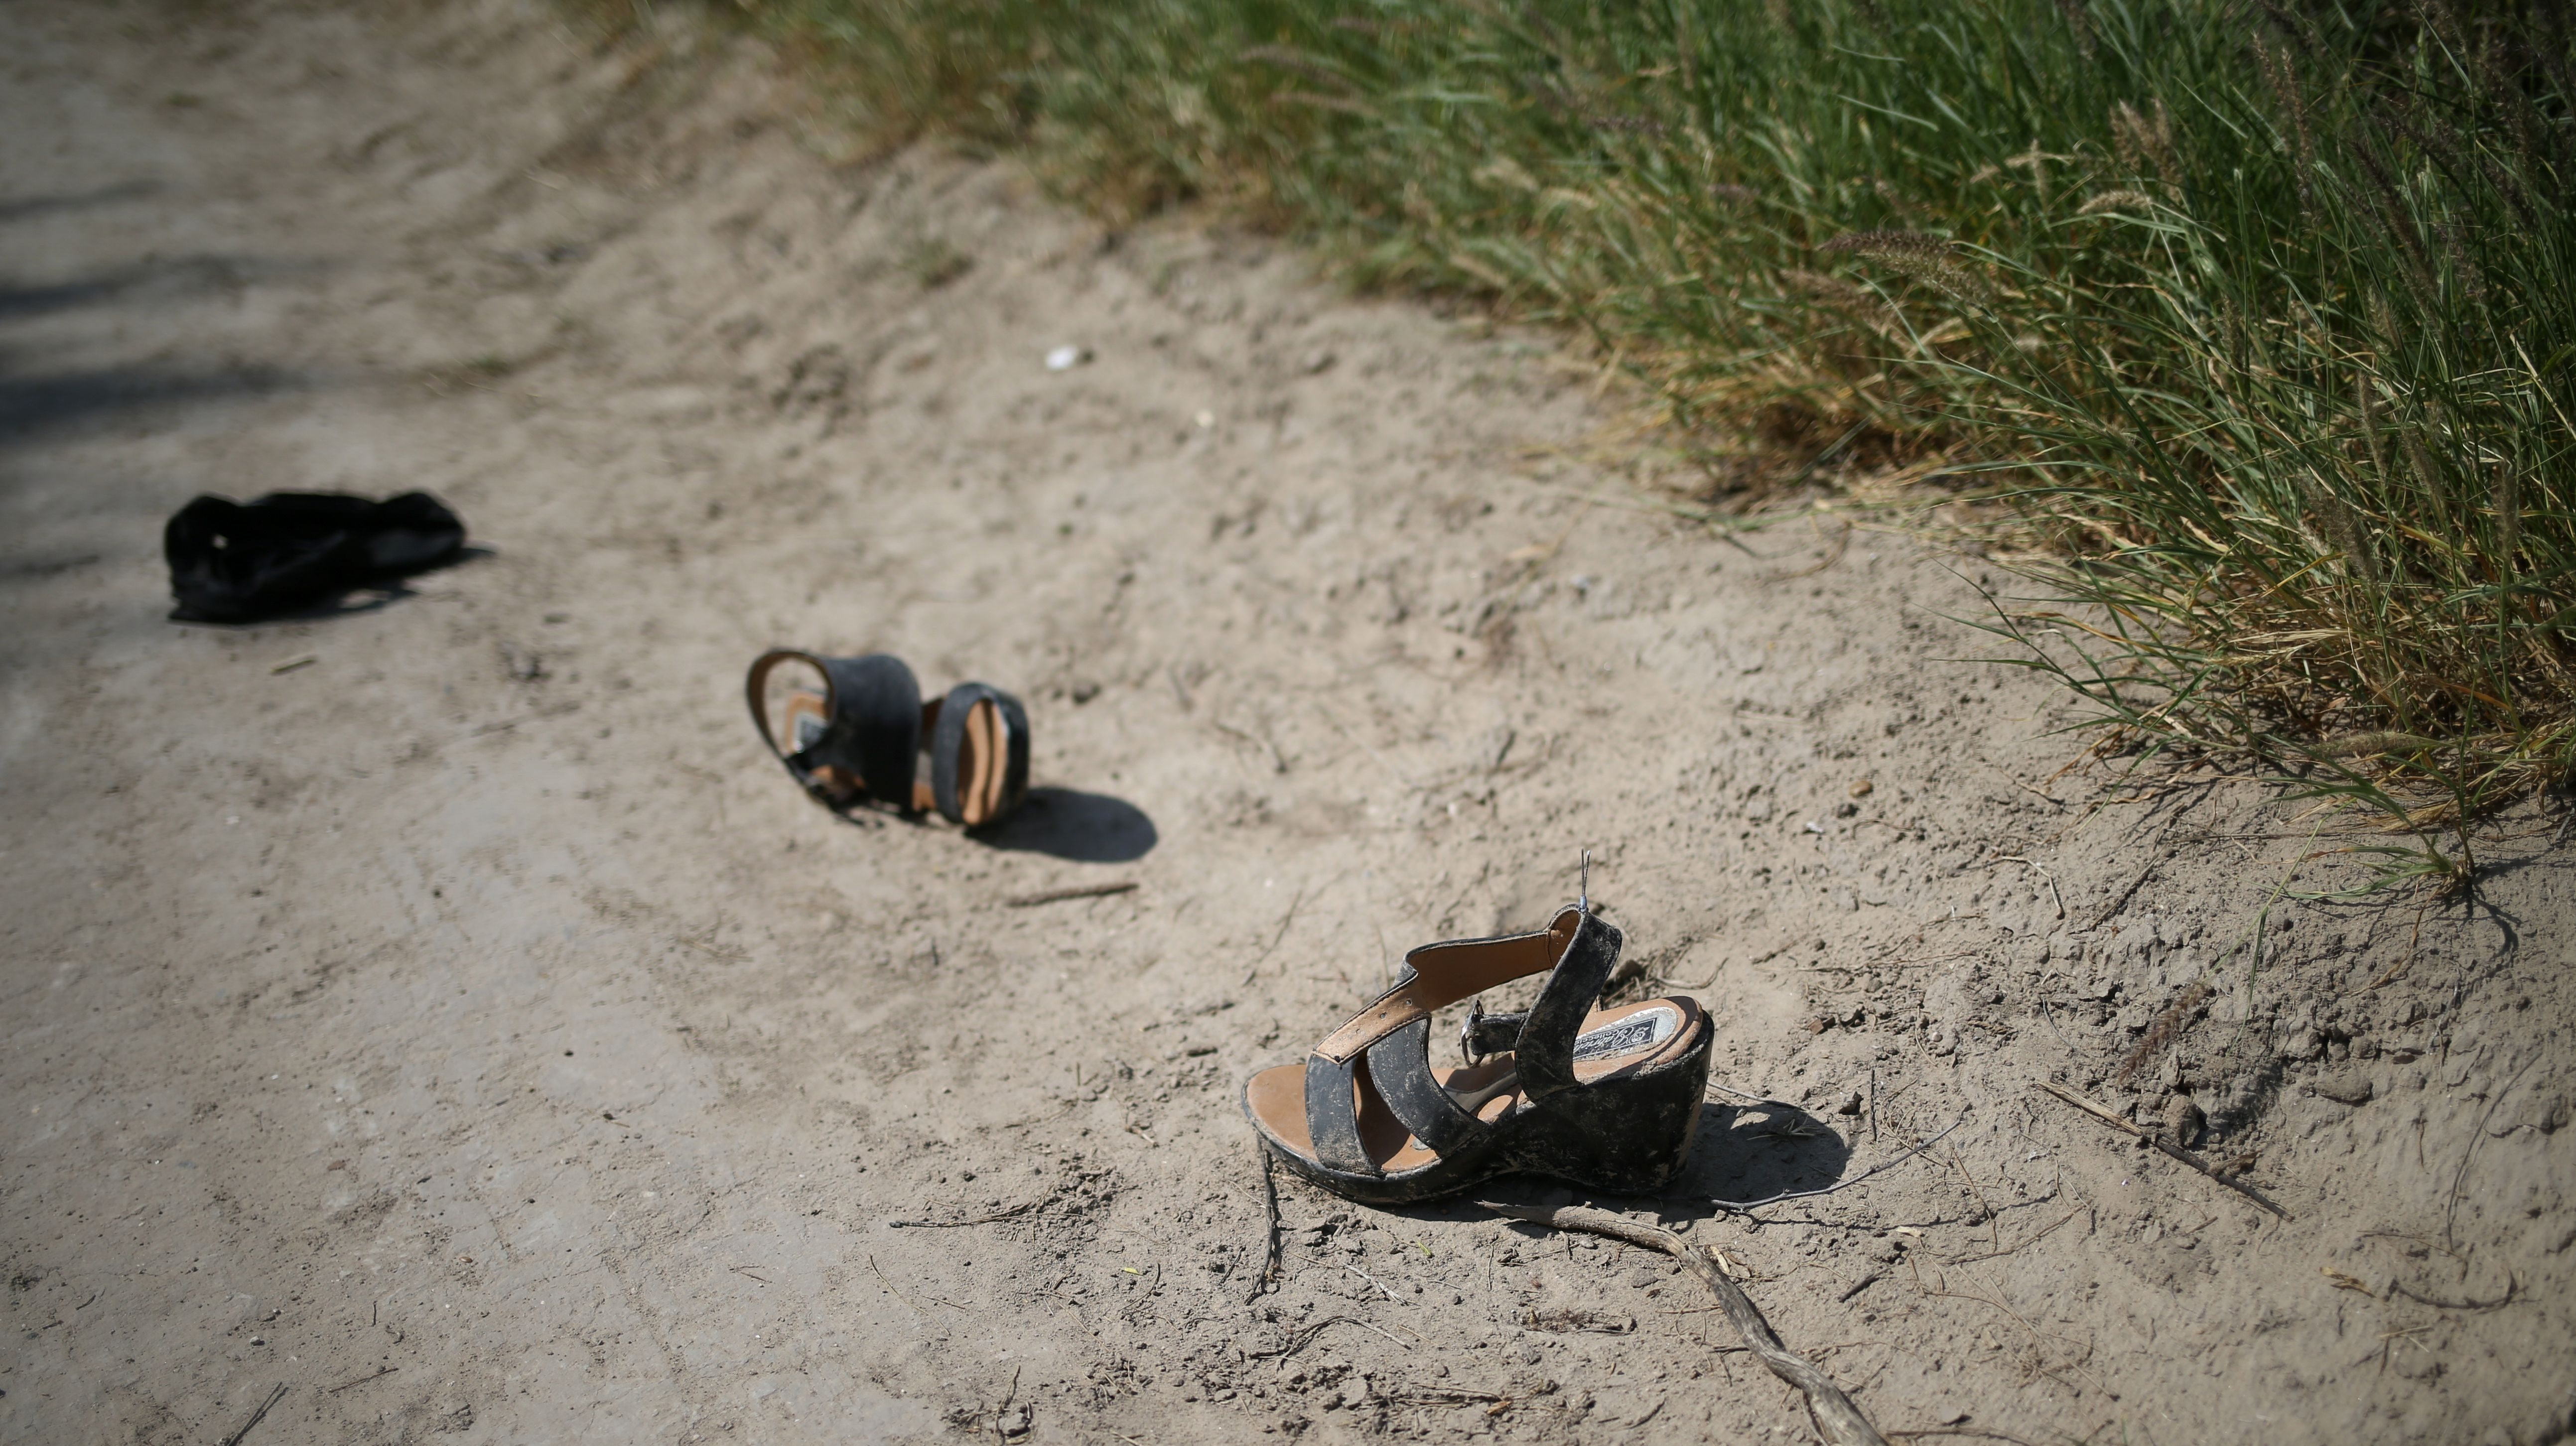 Pictured are shoes left behind on a dirt road used frequently by illegal immigrants at the Mexico-US border near McAllen, Texas, on May 9, 2018.